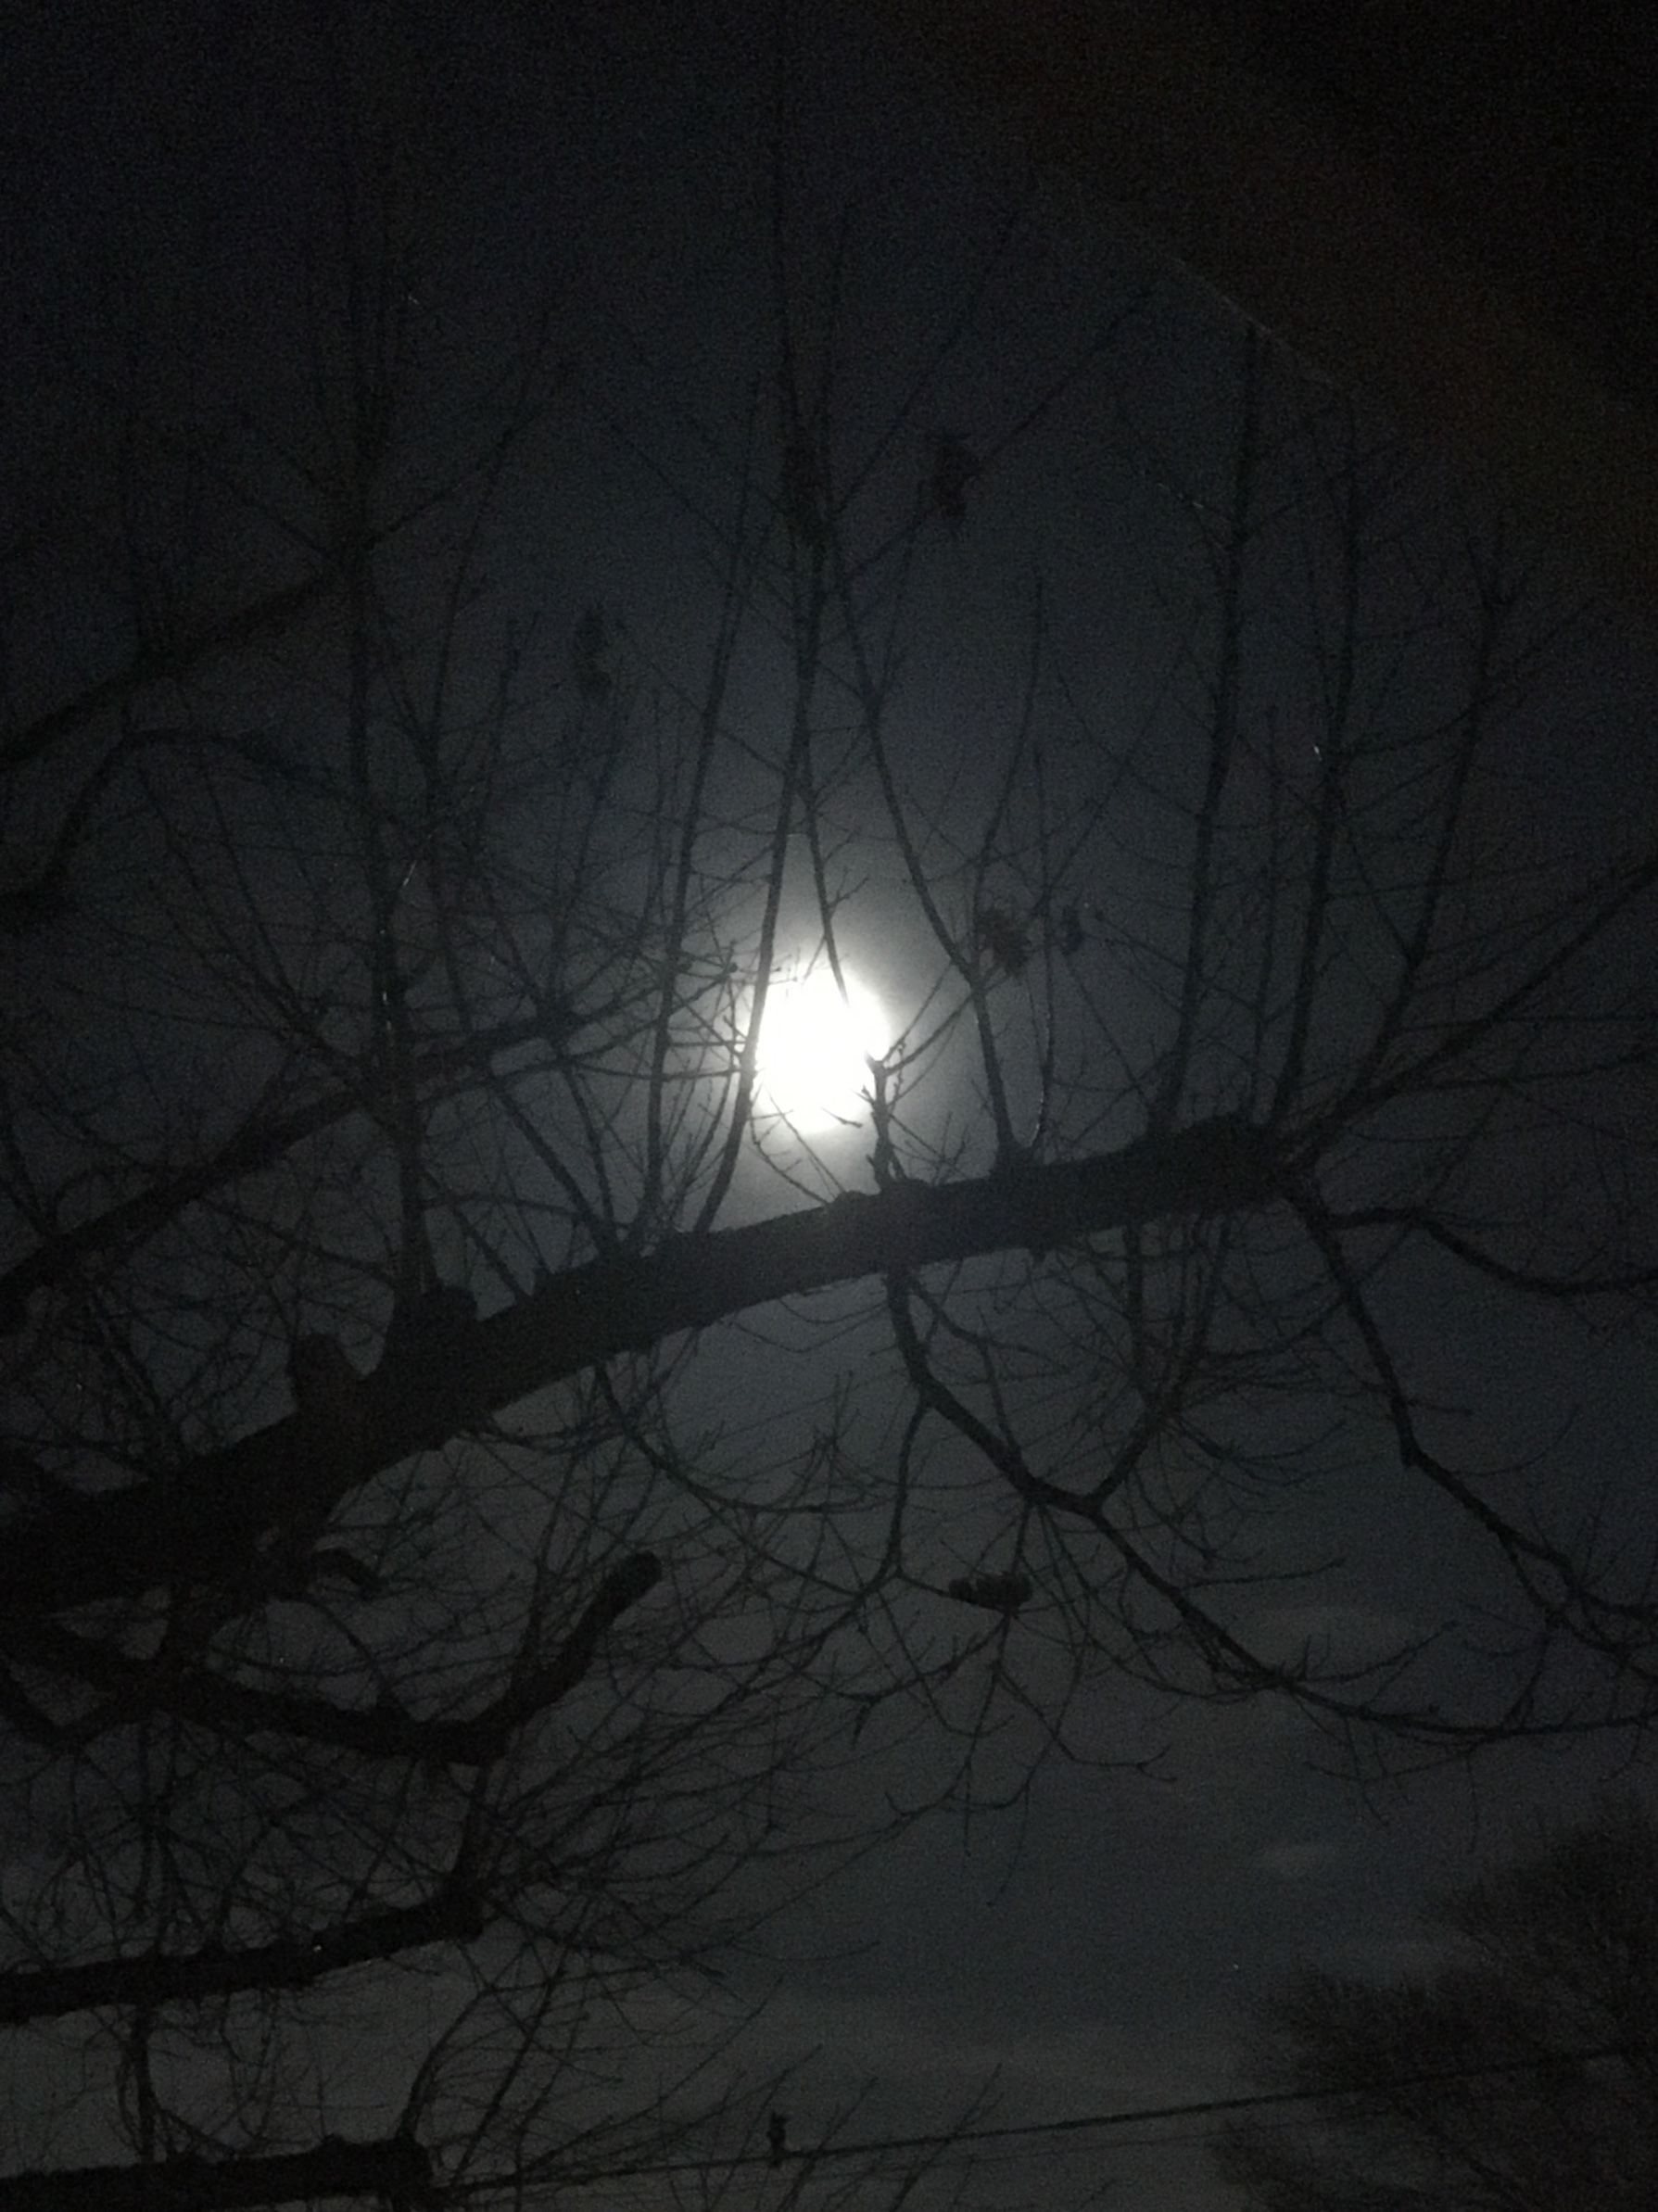 Photo of the moon shot through tree branches